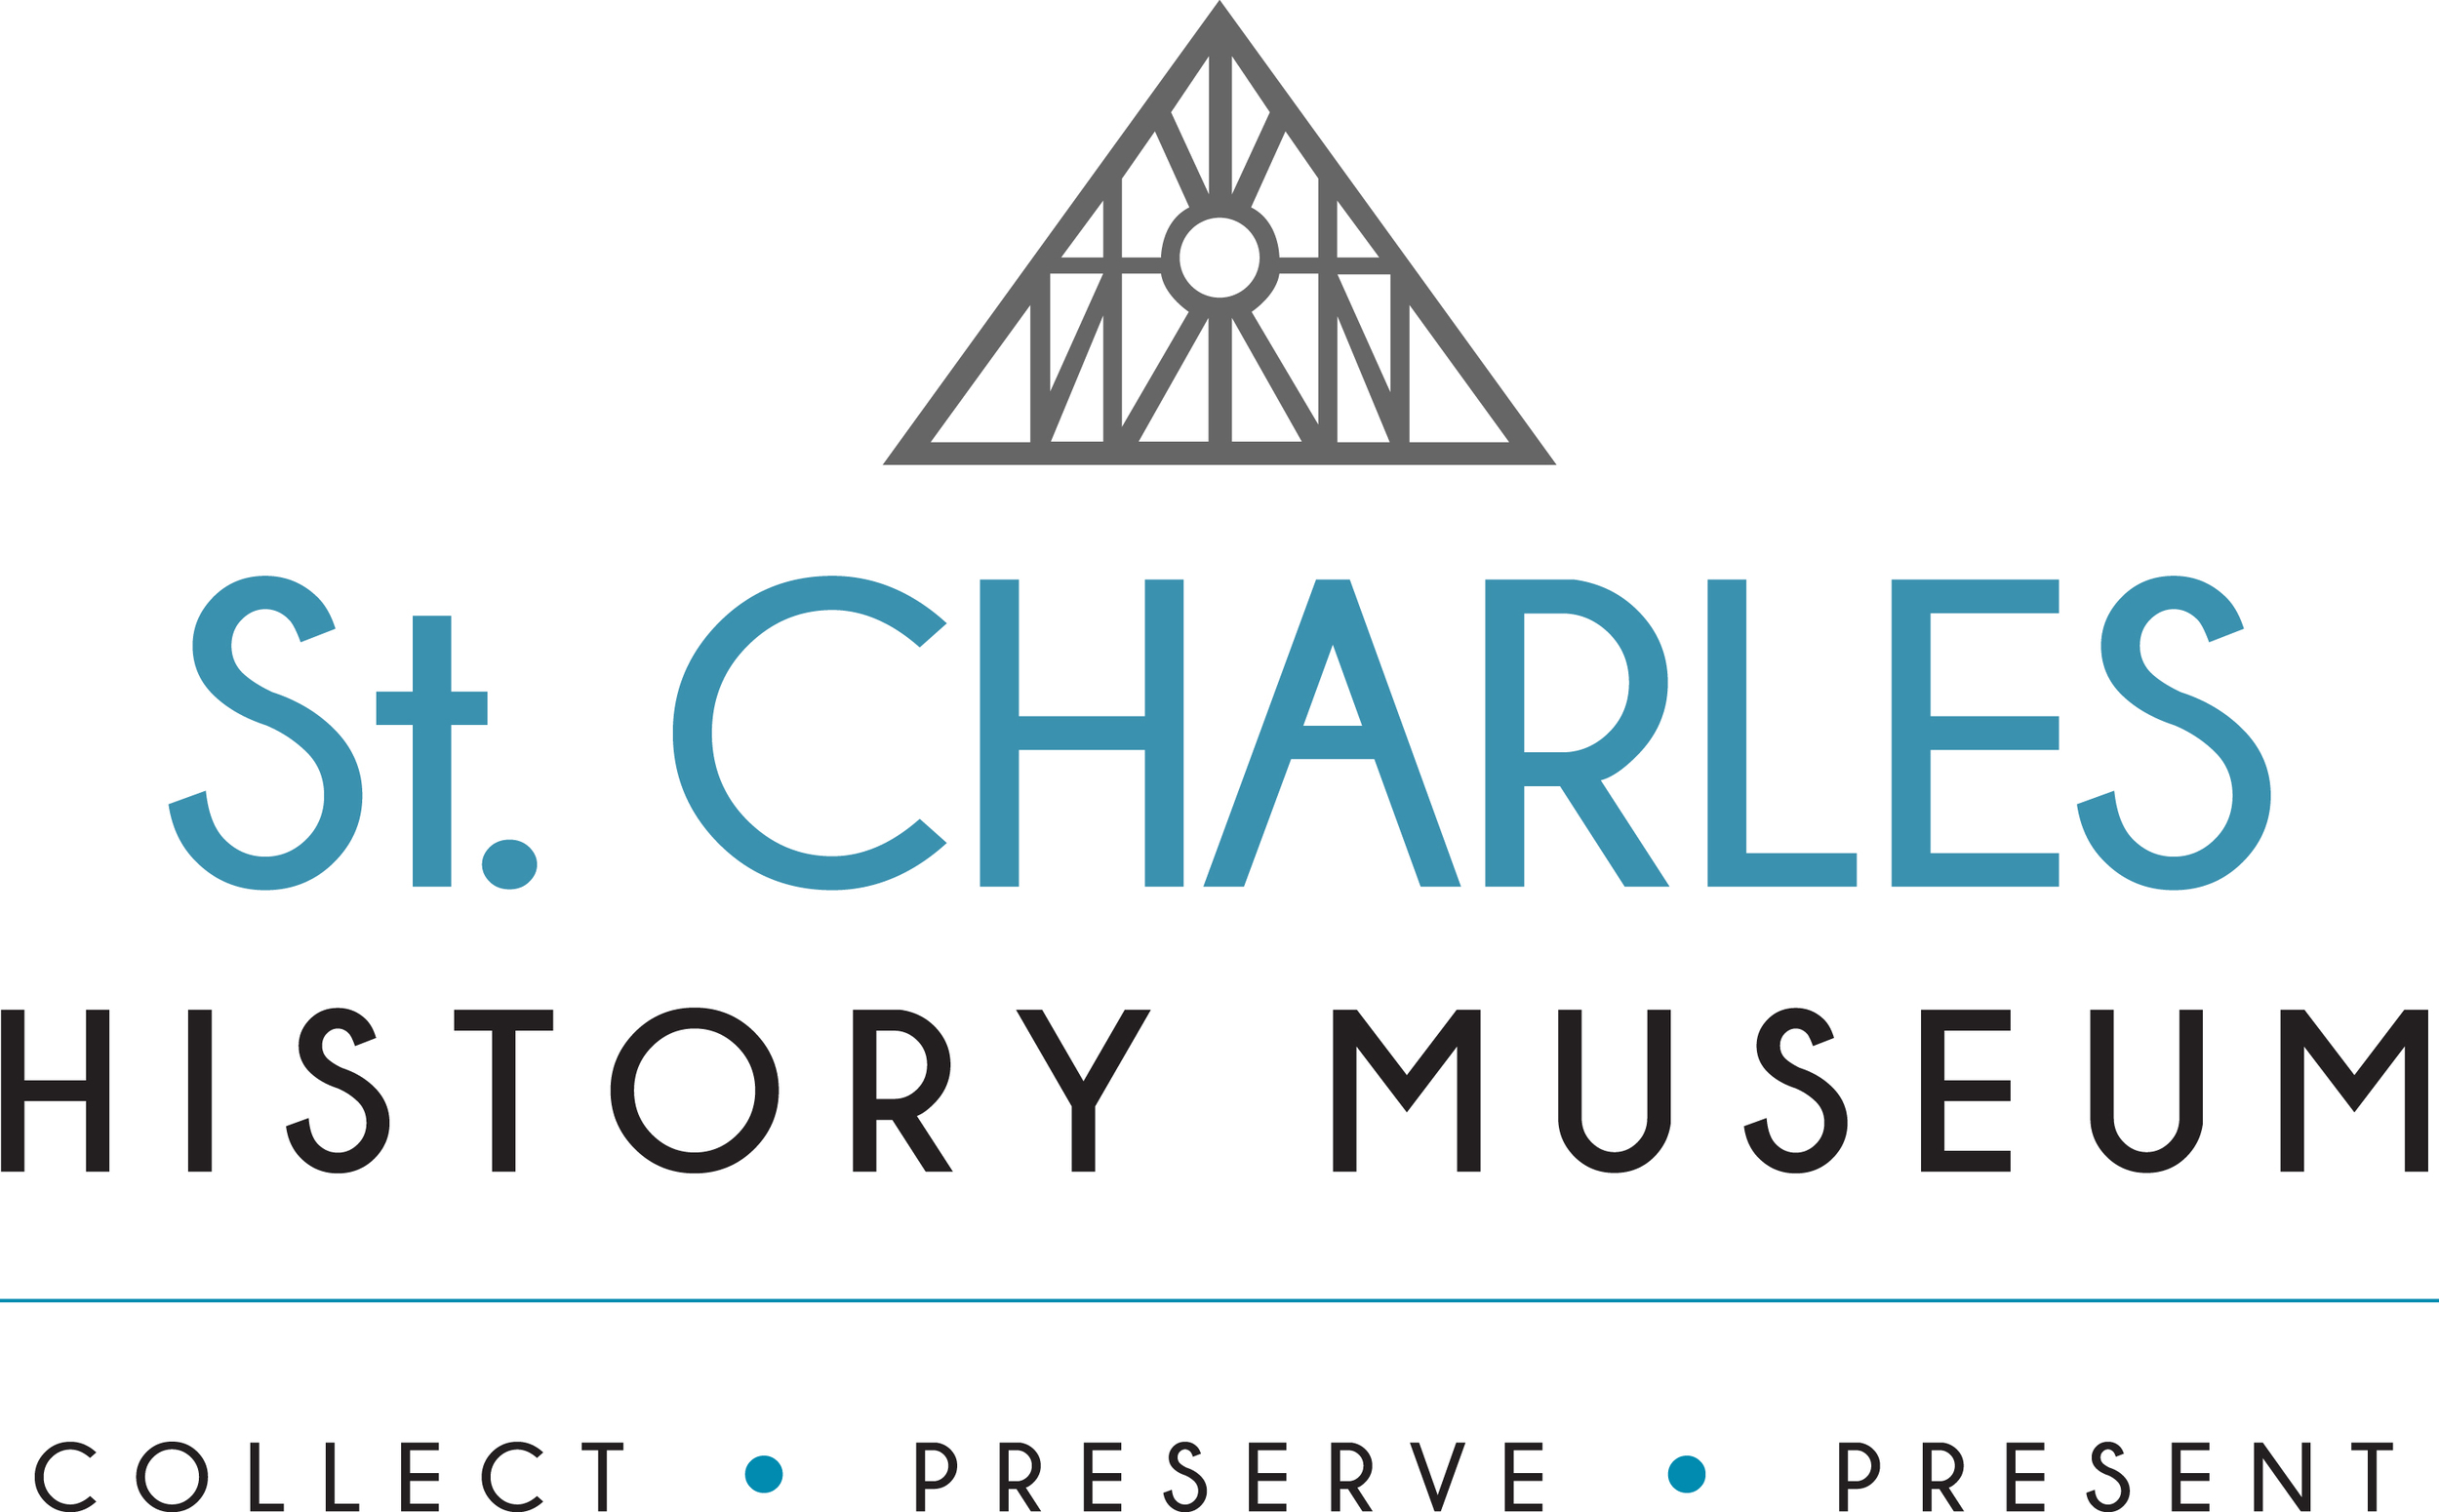 The new logo for the St. Charles History Museum designed by Ellingsen Design